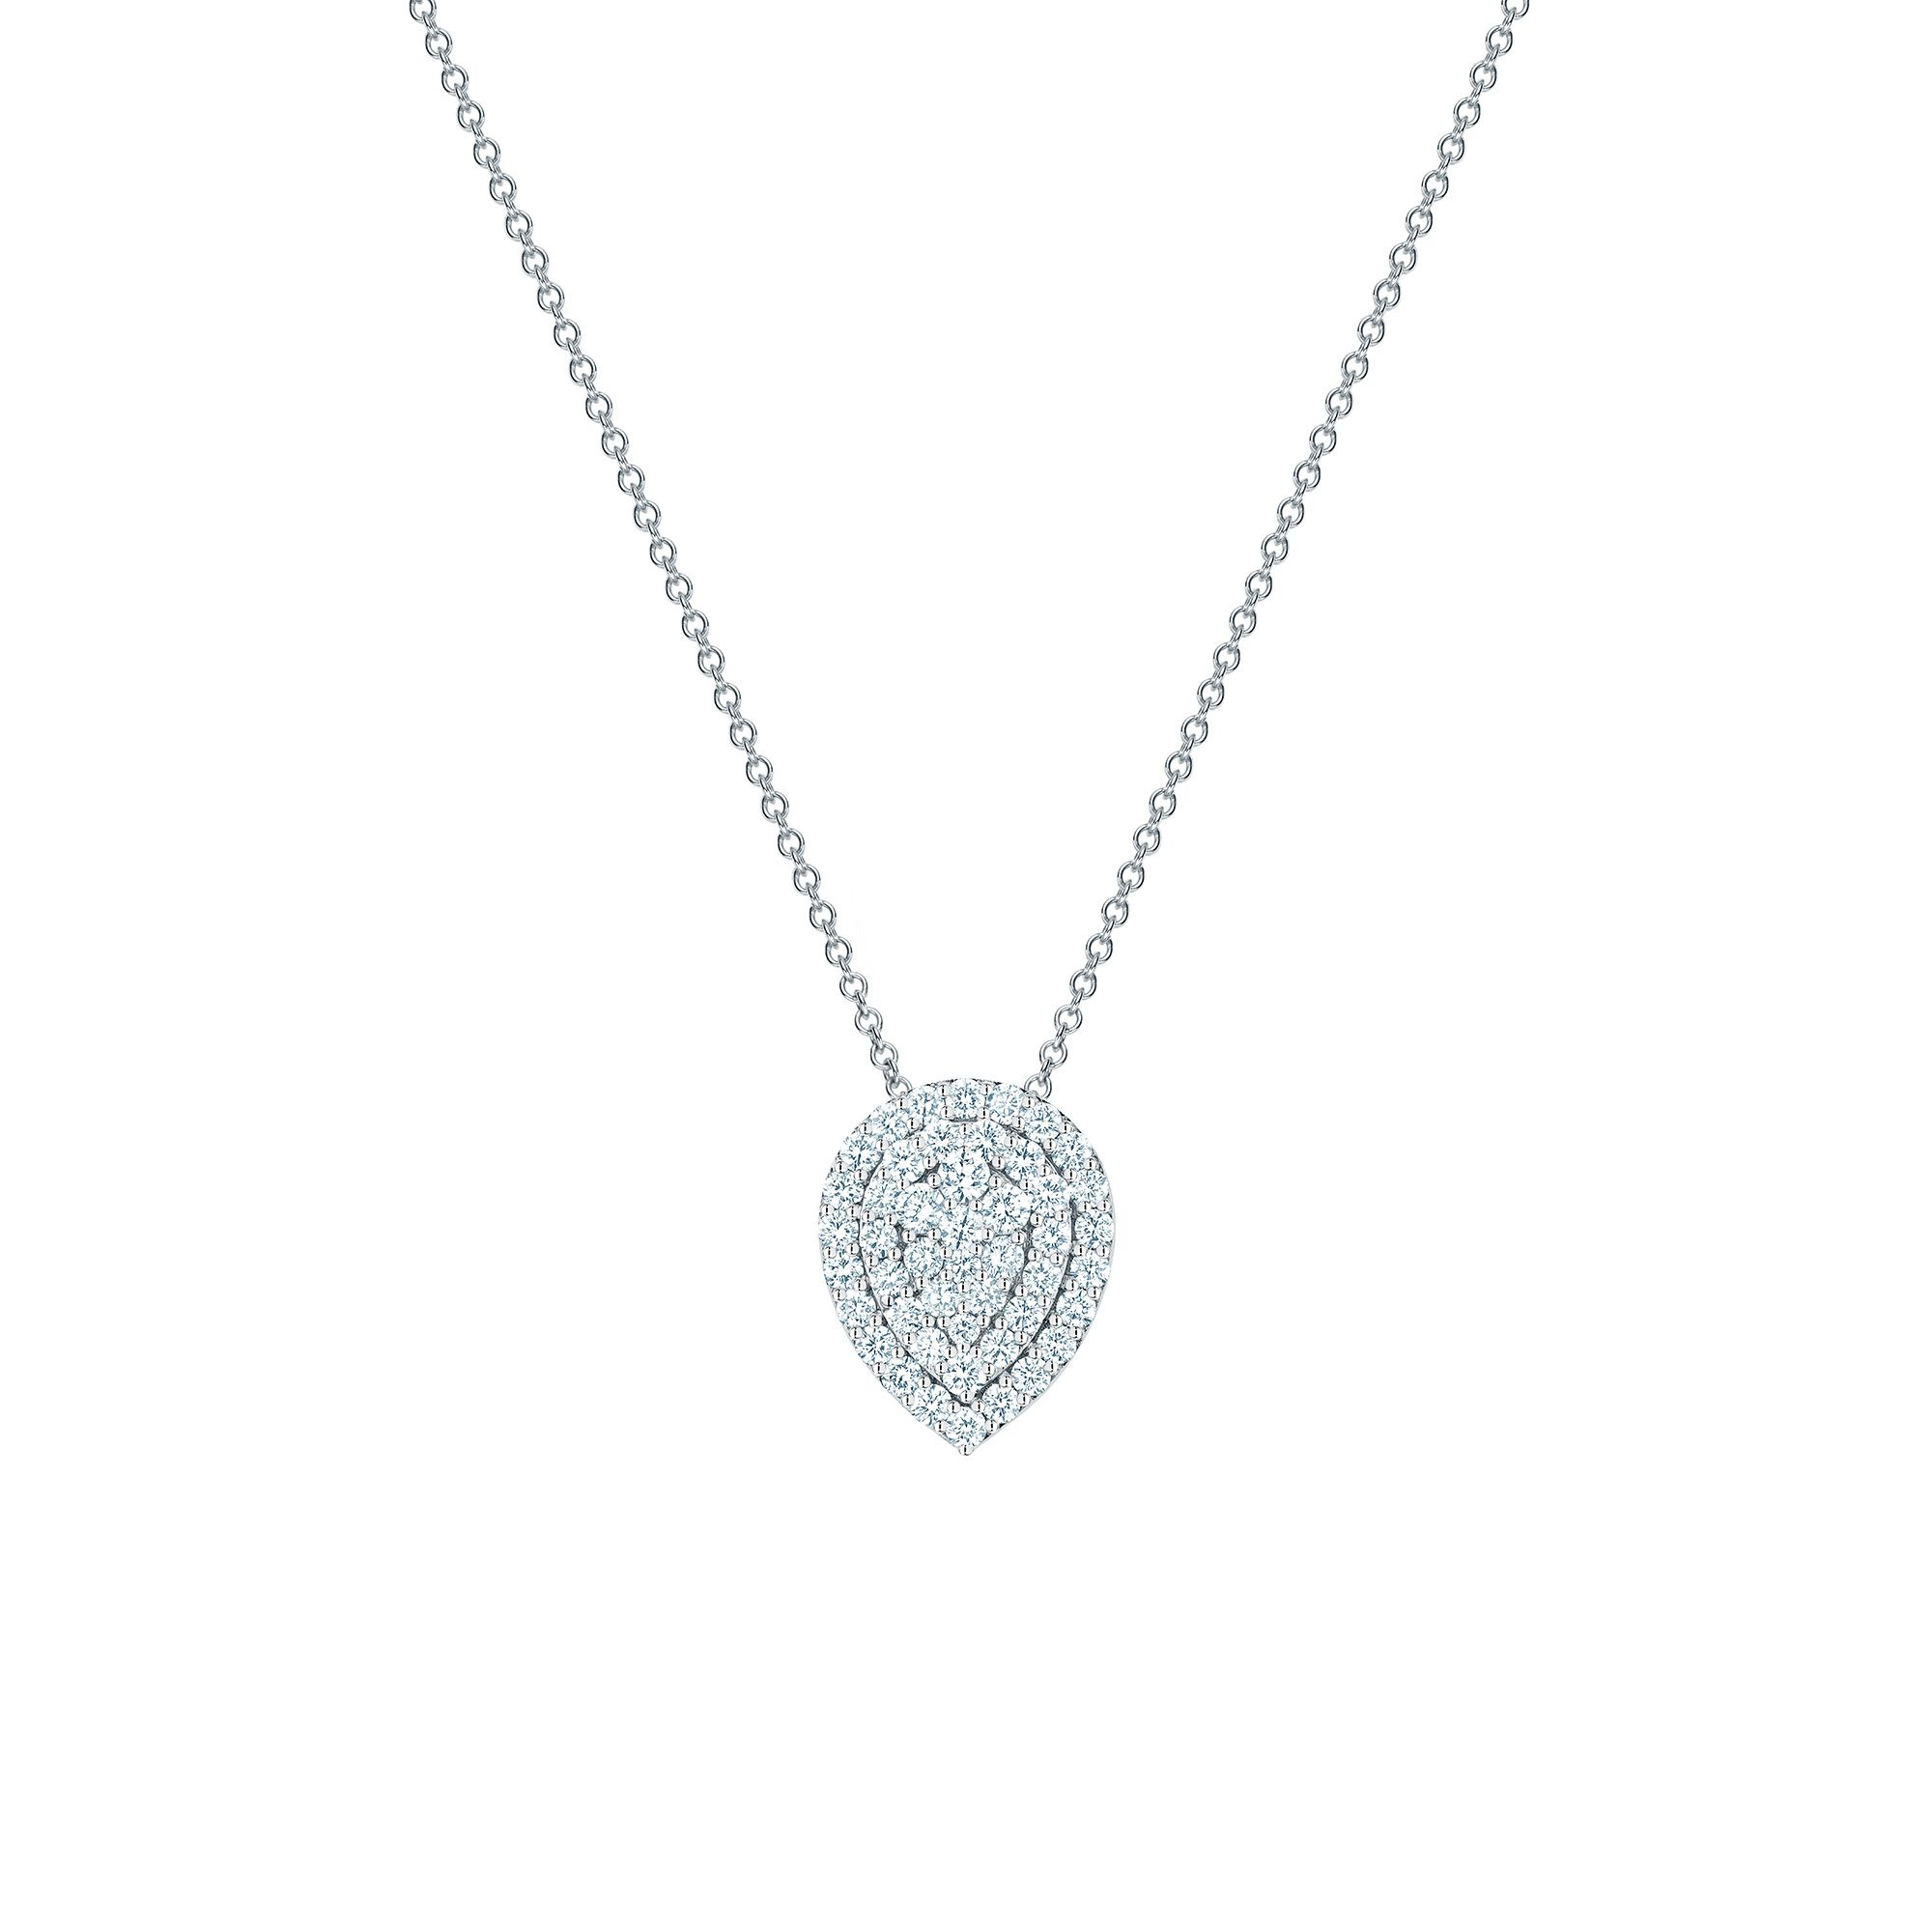 Birks 18K White Gold .85cts  Diamond Gold Necklace with Stones 450012707679